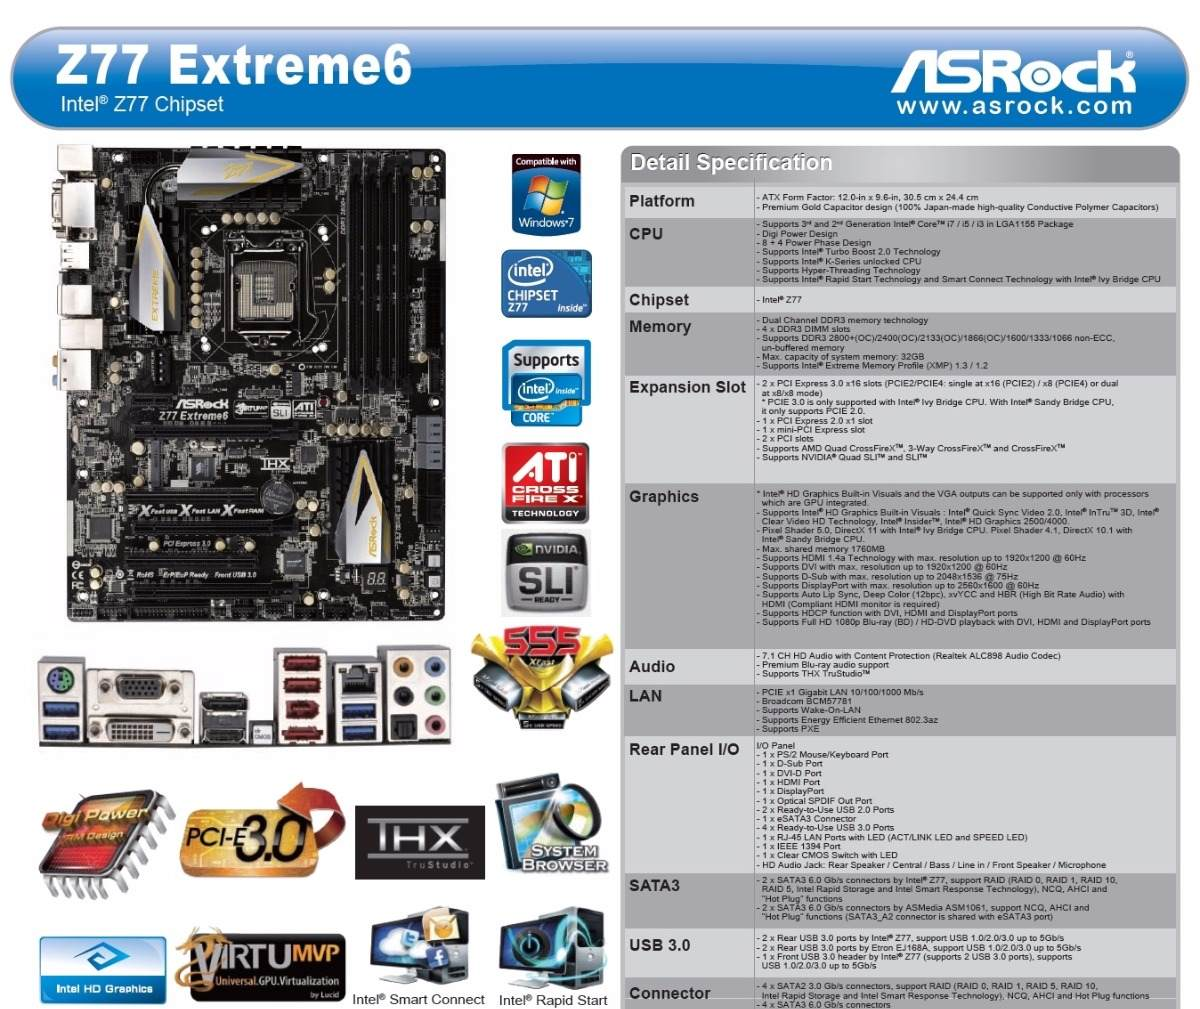 ASROCK Z77 EXTREME6 INTEL AHCI DRIVER FOR WINDOWS